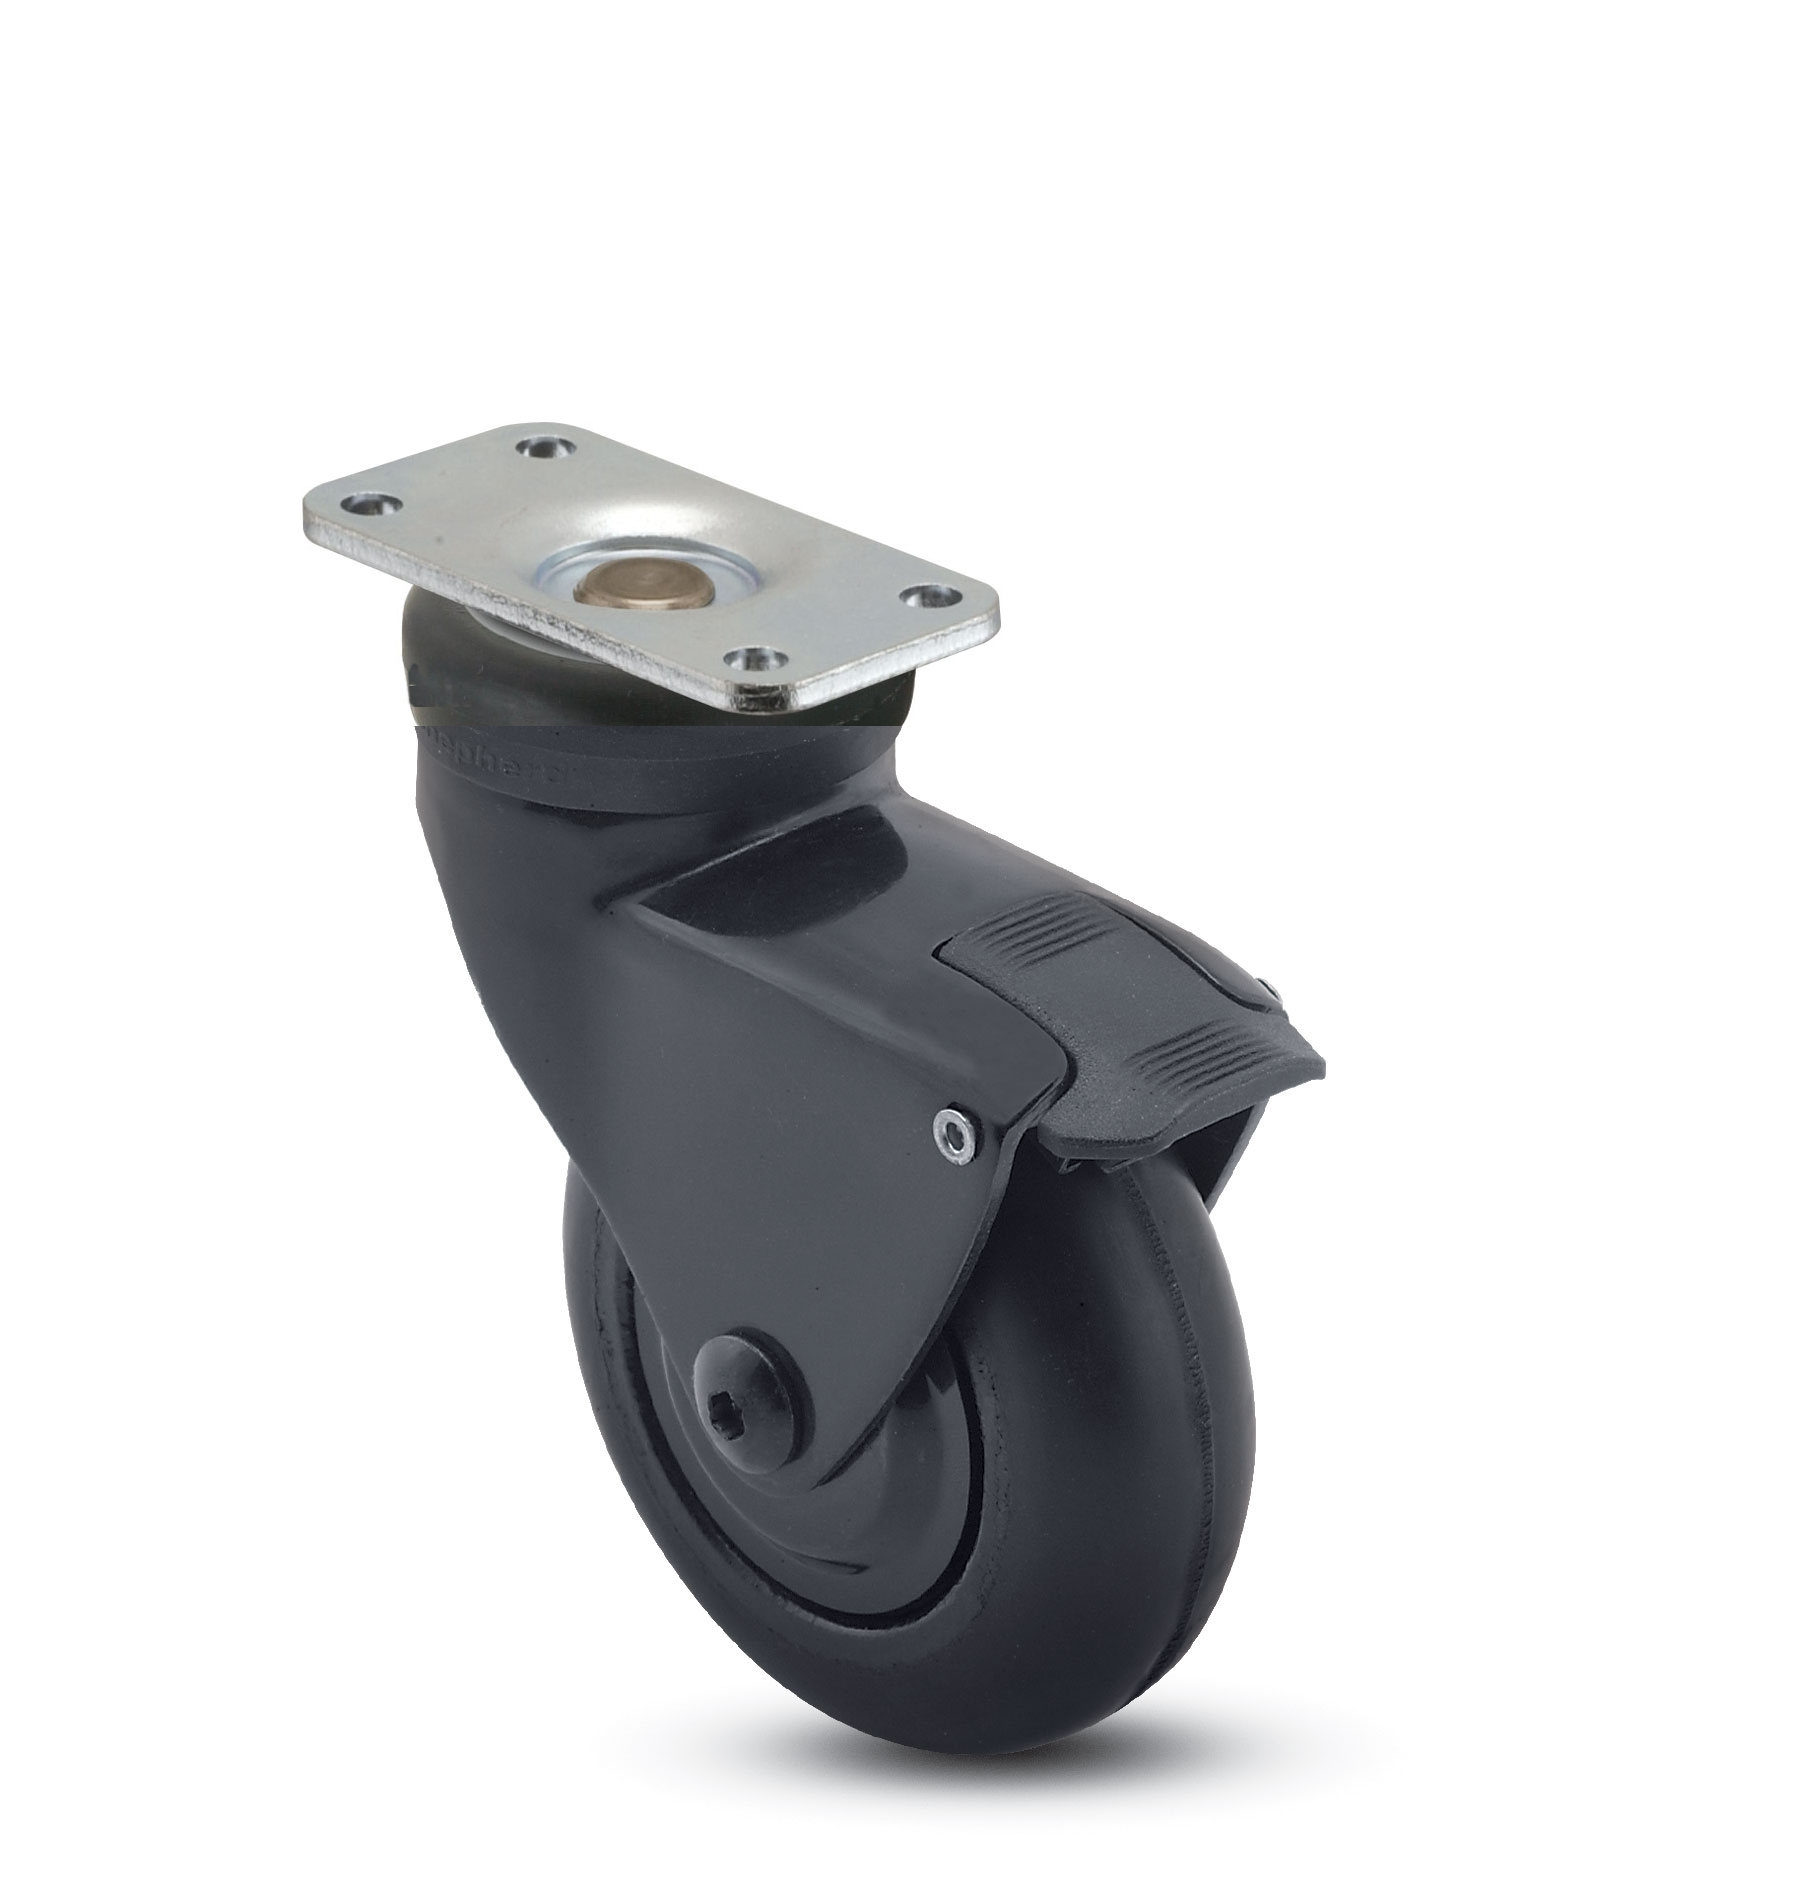 "Caster; Swivel; 3"" x 15/16""; Rubber (Soft; non-marking); Plate (1-1/4"" x 2-3/8""; holes: 13/16"" x 1-1/4""; 3/16"" bolt); Black; Prec Ball Brng; 110#; Pedal Brake (65650)"